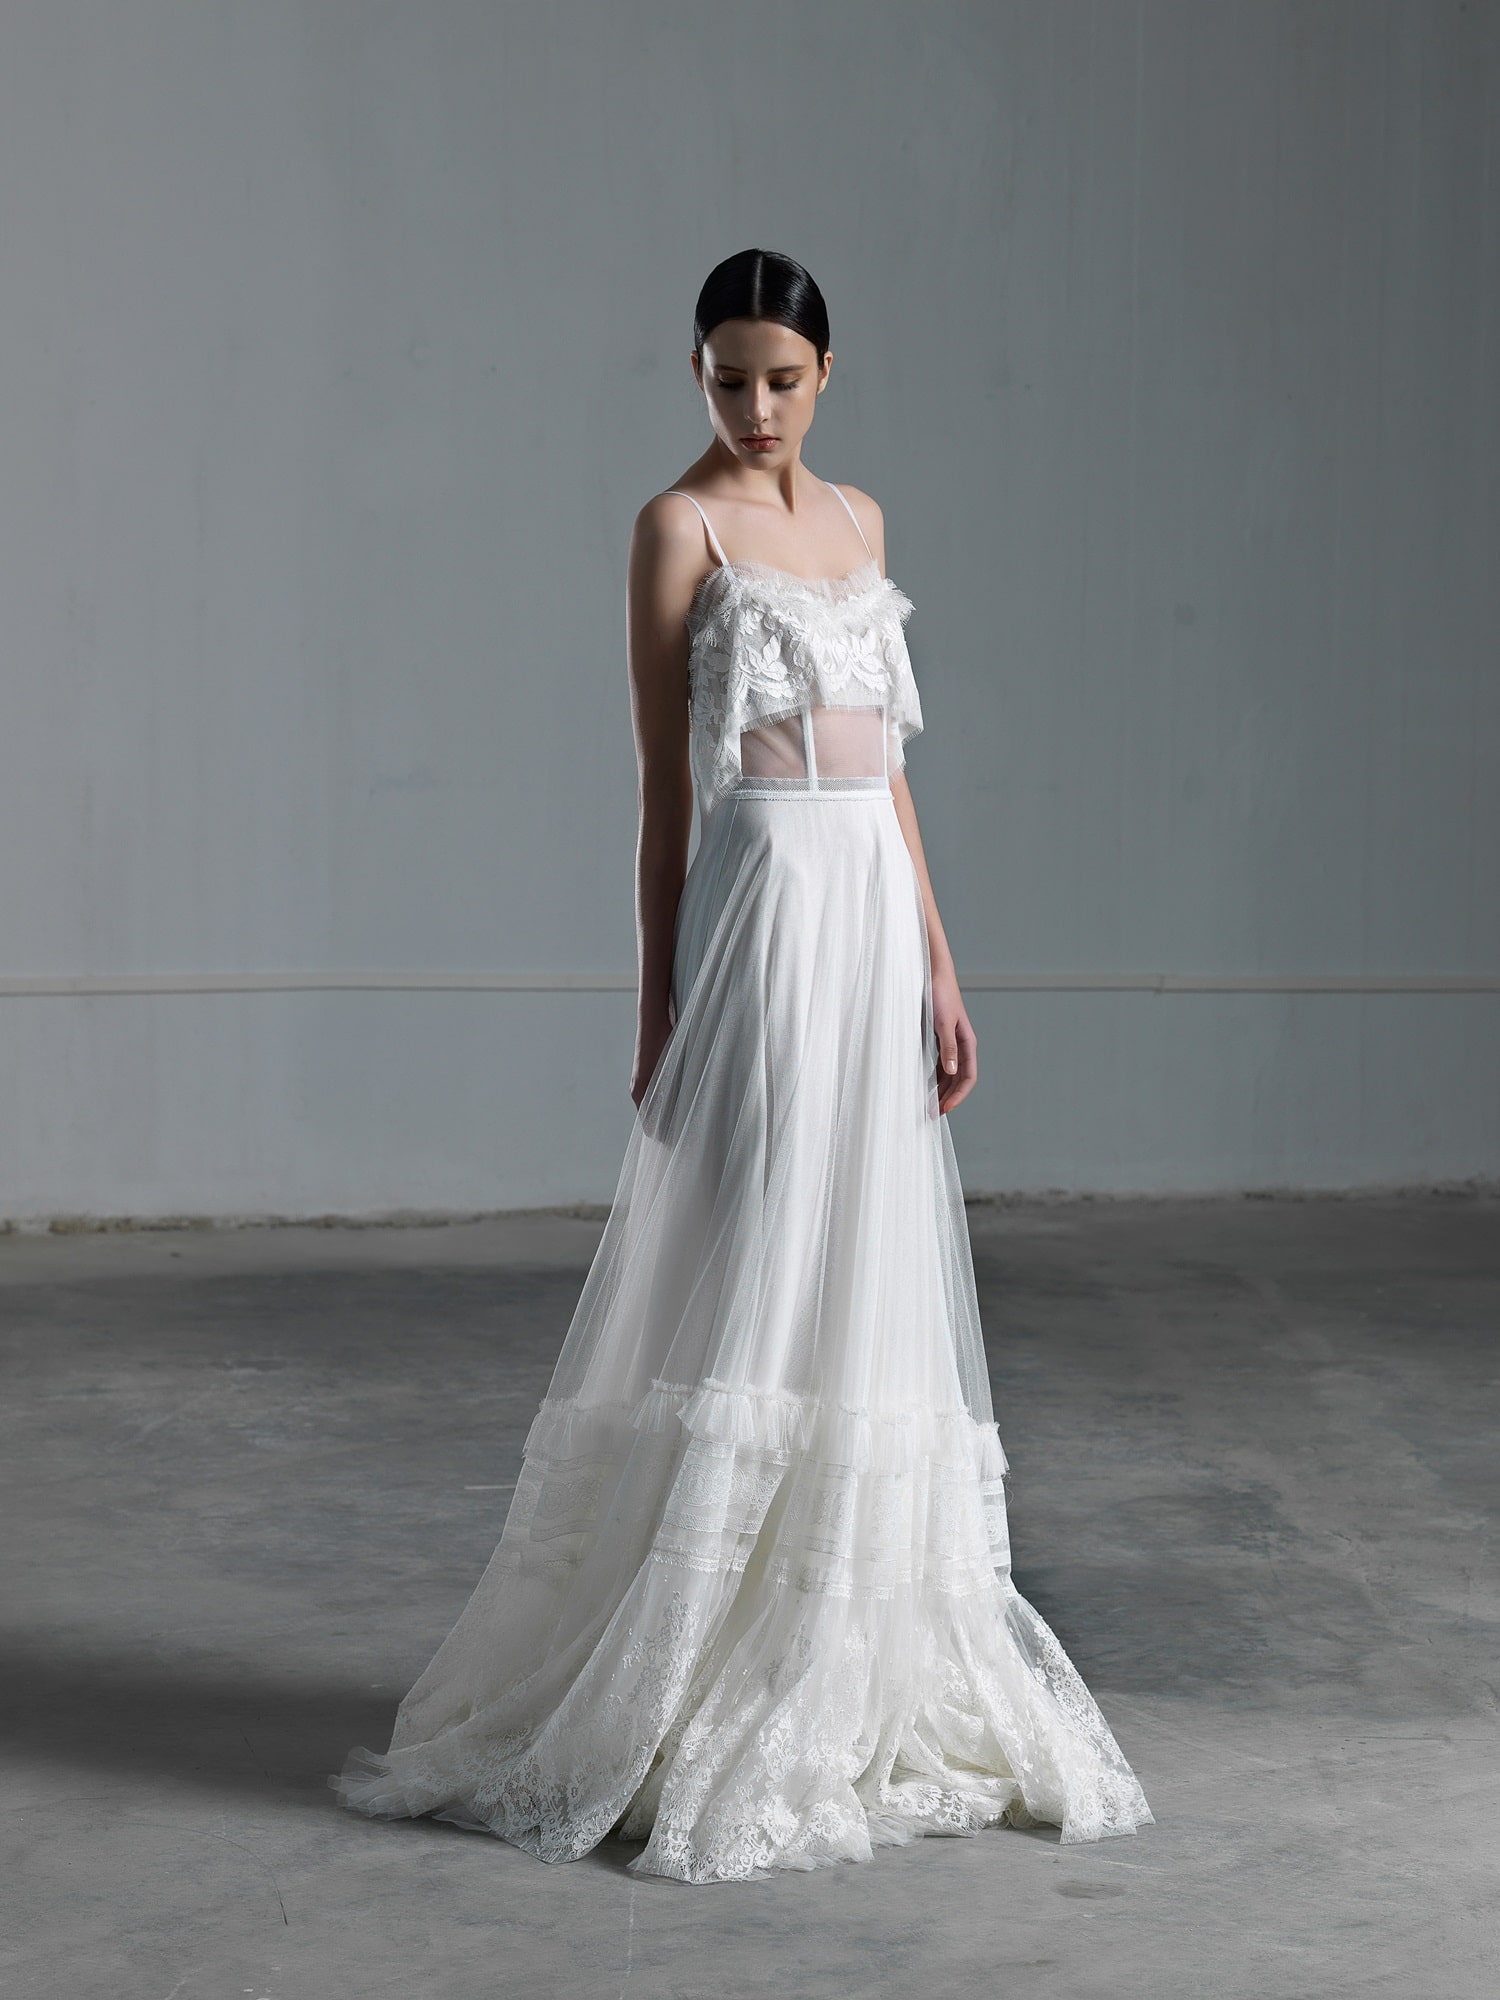 Romantic ethereal wedding dress with transparencies vasia romantic ethereal wedding dress with lace top with transparencies and thin straps junglespirit Gallery